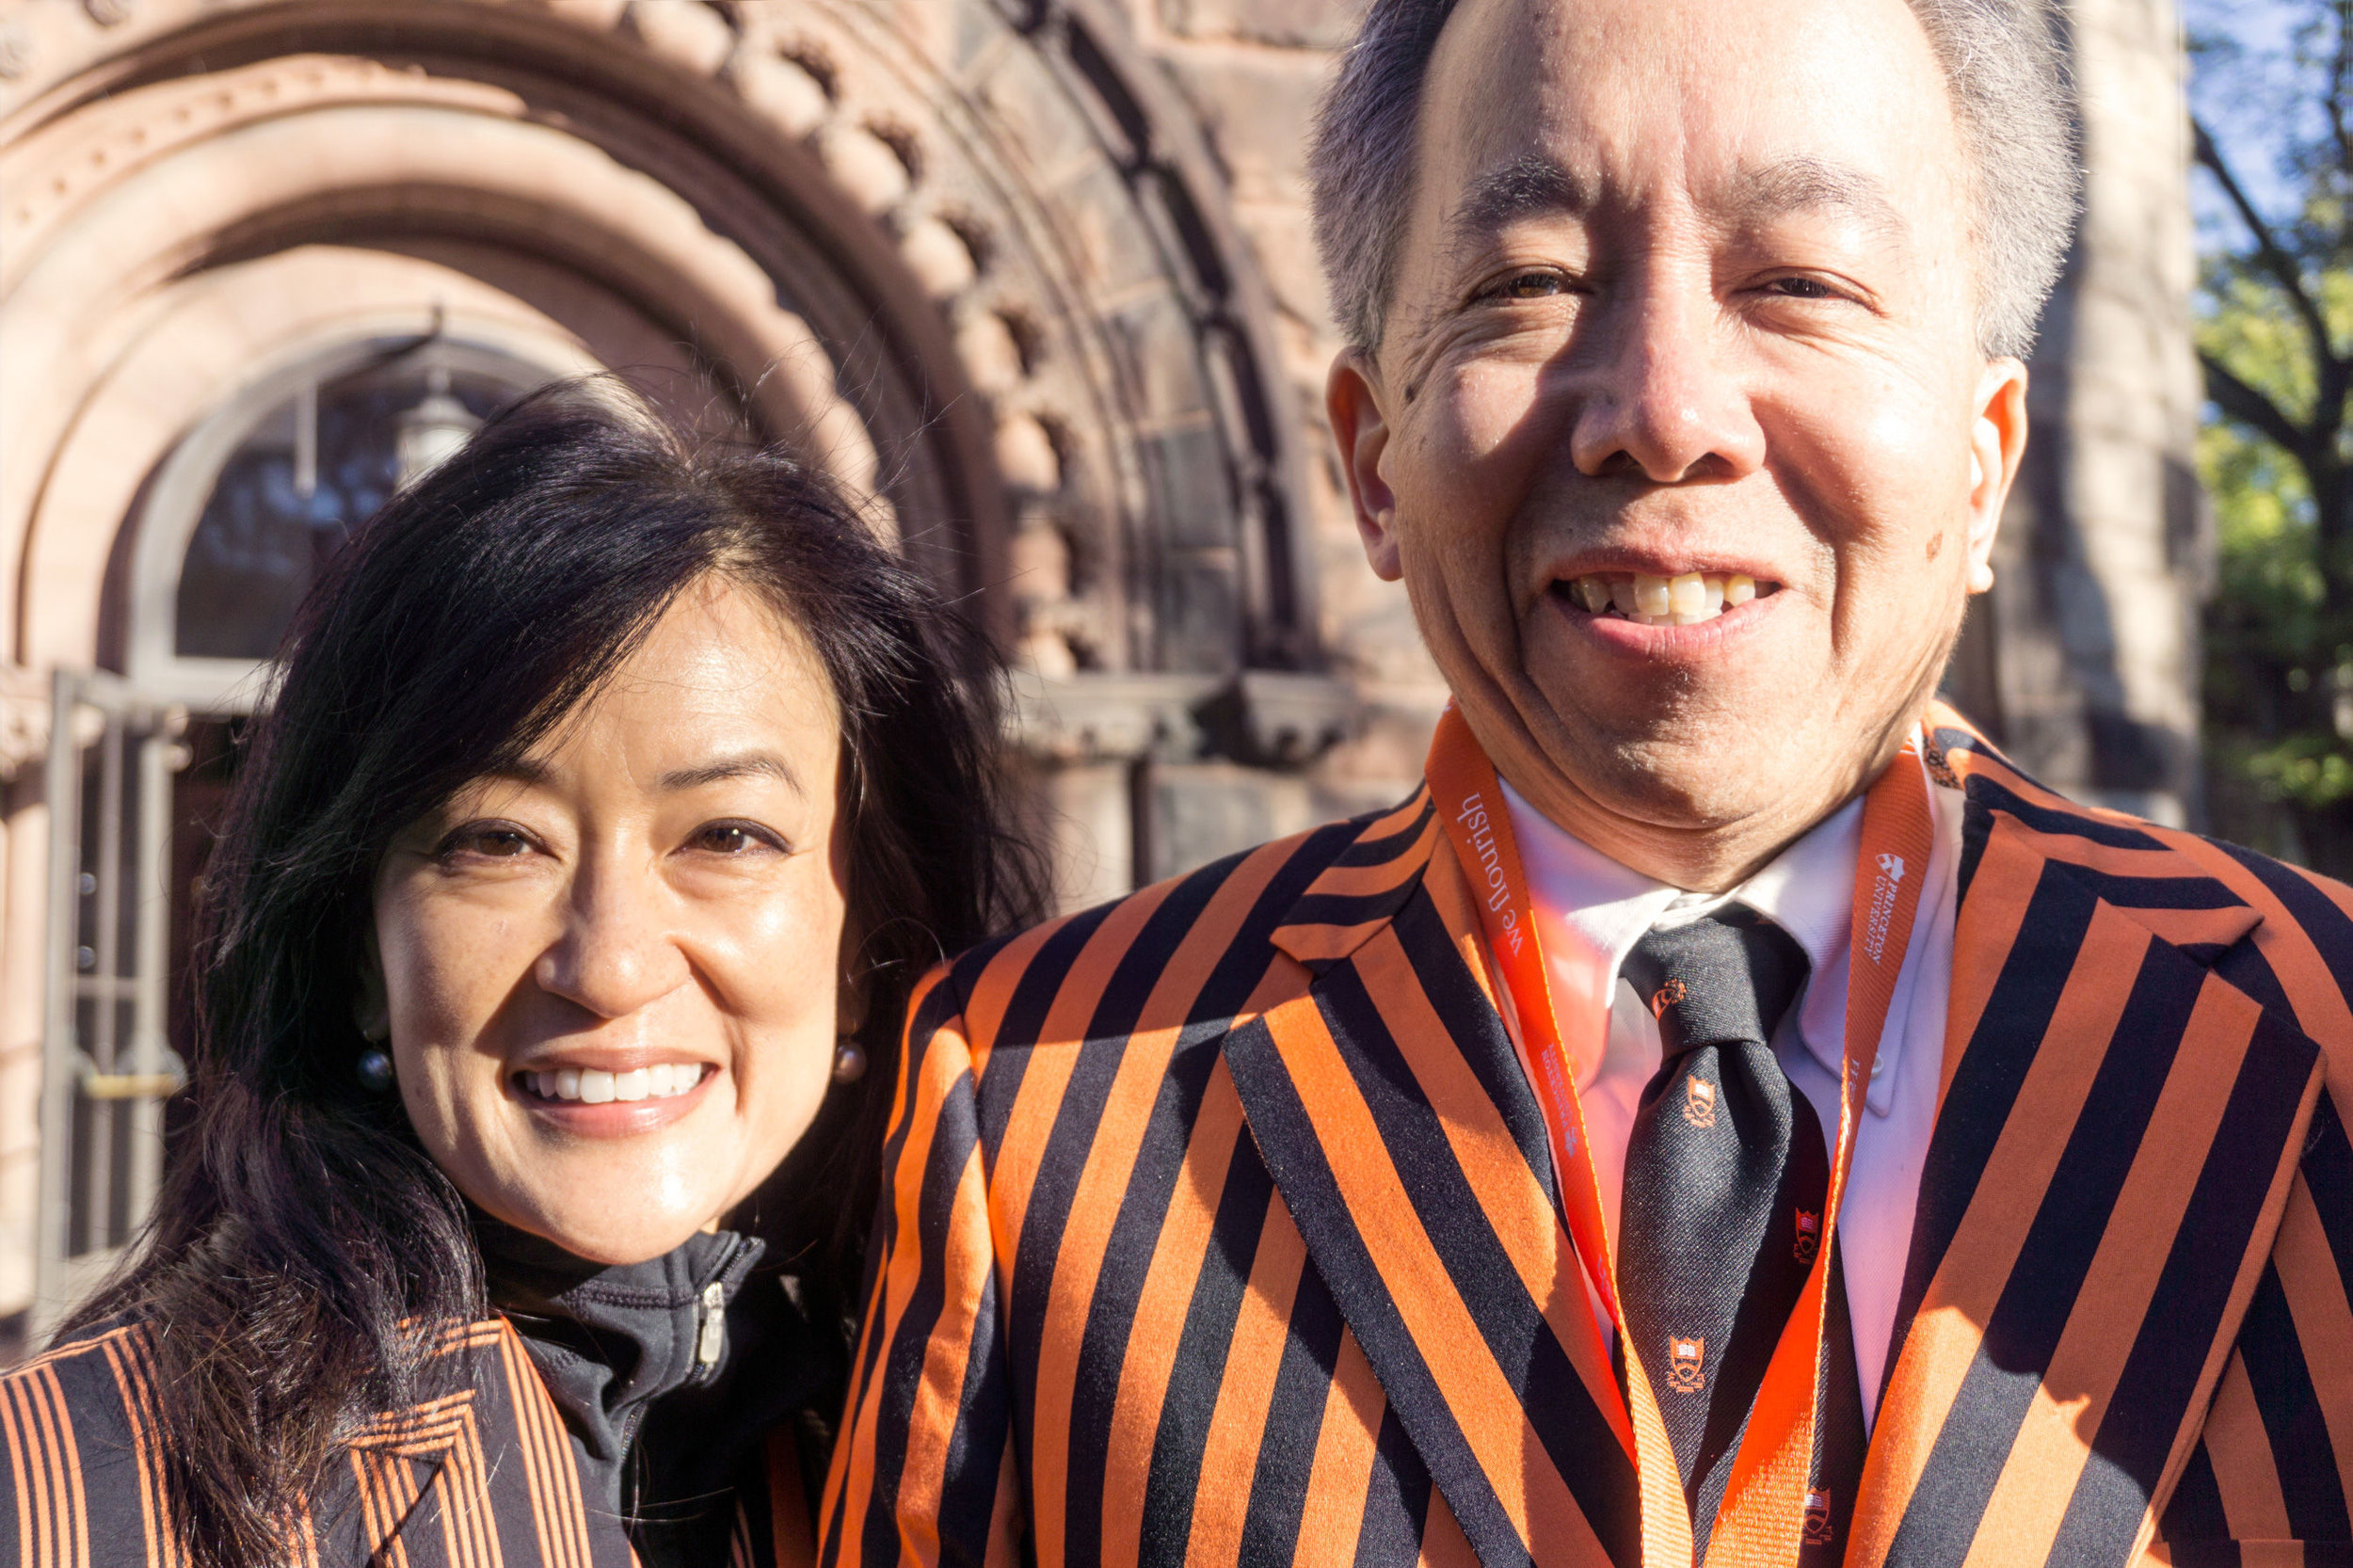 Alumni wearing Reunions jackets in front of Alexander Hall.